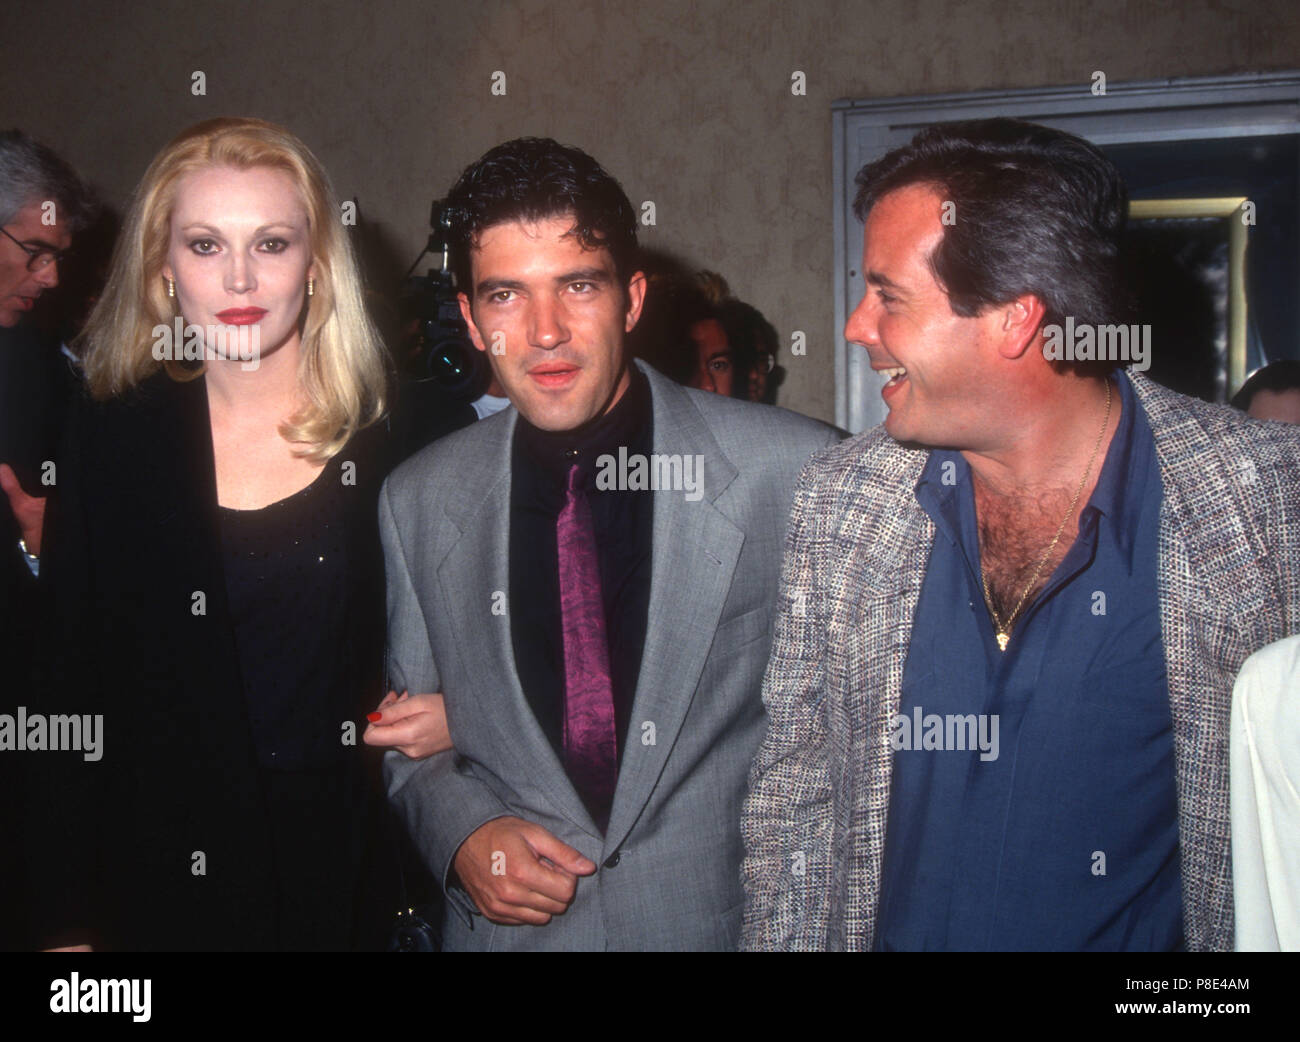 Page 3 Desi Arnaz High Resolution Stock Photography And Images Alamy My account has come under attack, too, i see. https www alamy com westwood ca february 26 l r actress cathy moriarty actor antonio banderas and actor desi arnaz jr attend warner bros pictures the mambo kings premiere on february 26 1992 at the mann bruin theatre in westwood california photo by barry kingalamy stock photo image211752428 html